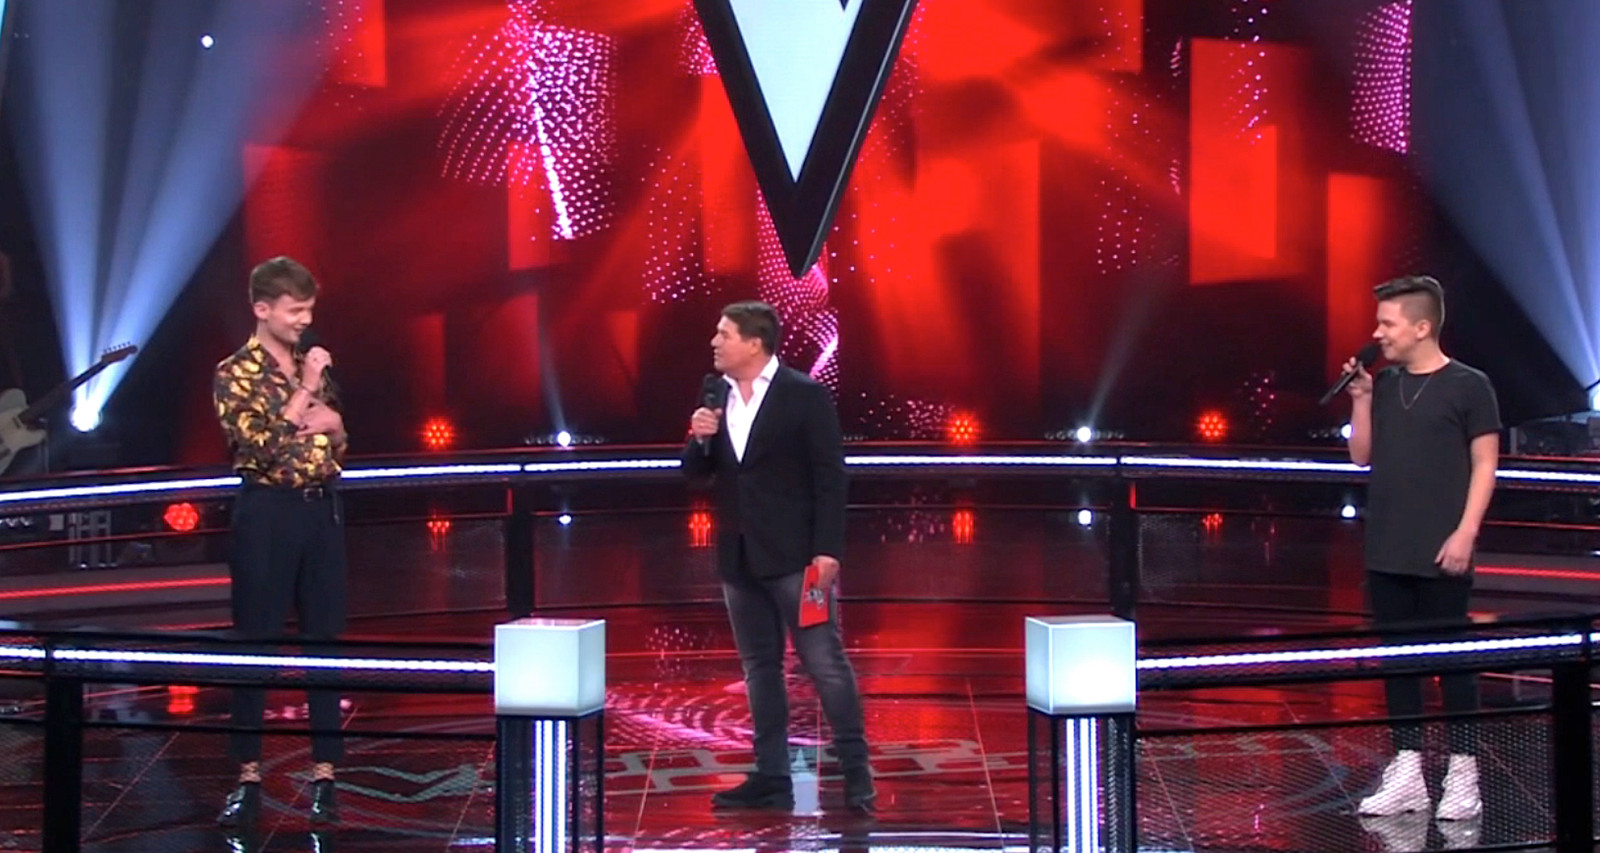 The Battles in The Voice of Holland.